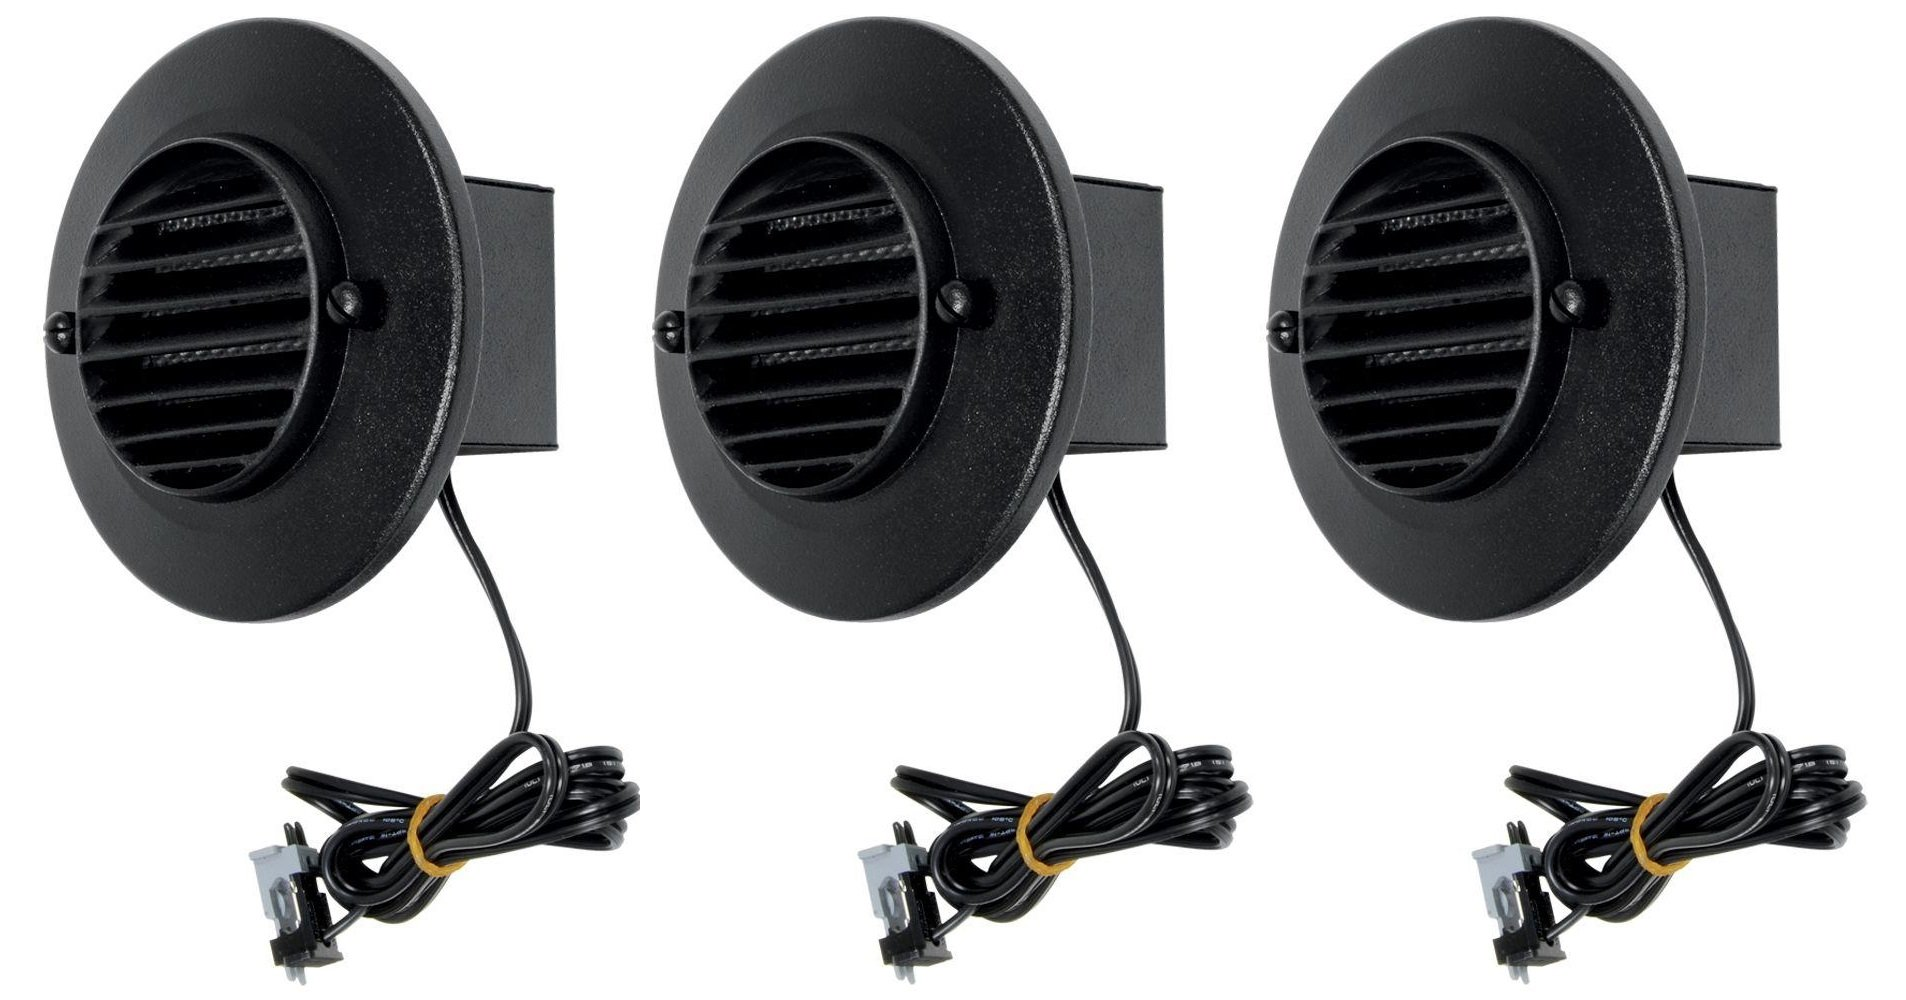 3 Pack Malibu 8401-9403-03 LED Deck Step Round Recessed Lights Low Voltage with Black Finish by Malibu Distribution